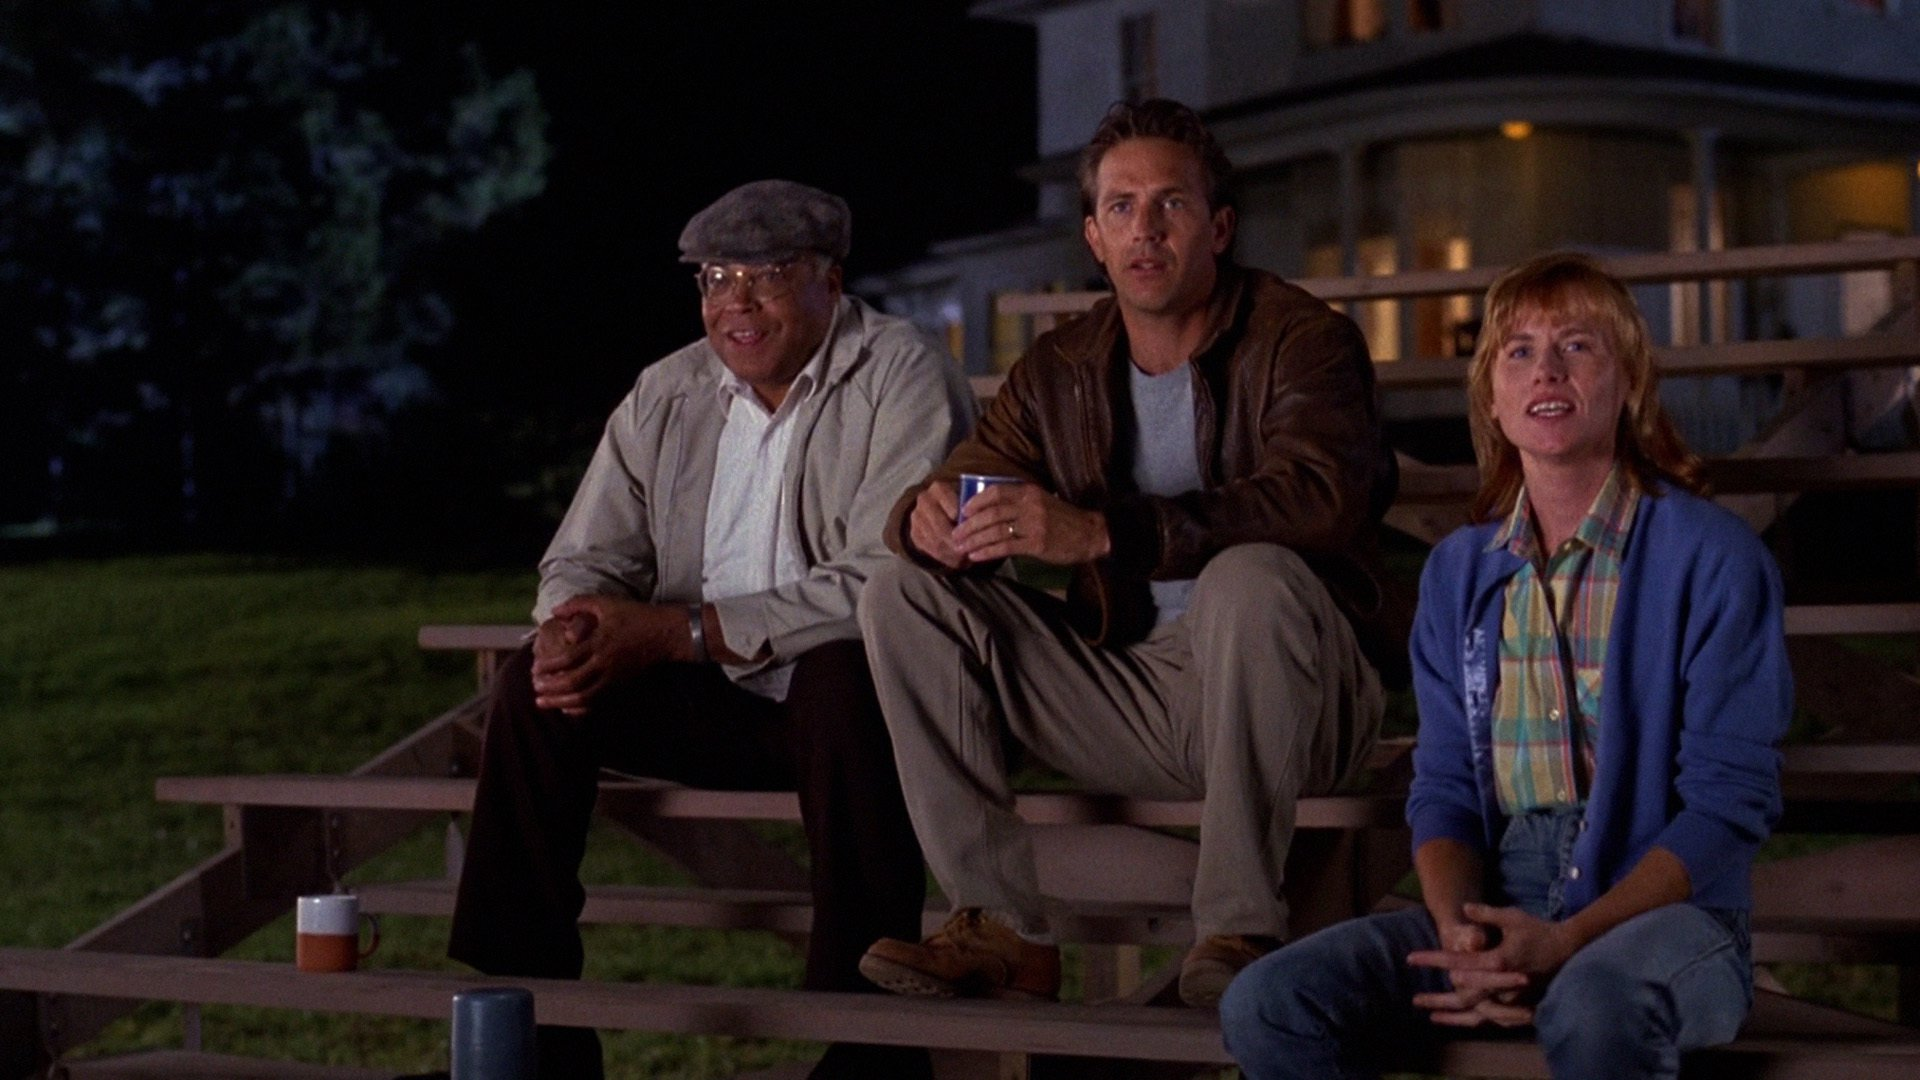 character analysis of ray kinsella in the movie field of dreams Field of dreams has the with ray kinsella, the character played by a nice field to play on this starts the movie's.